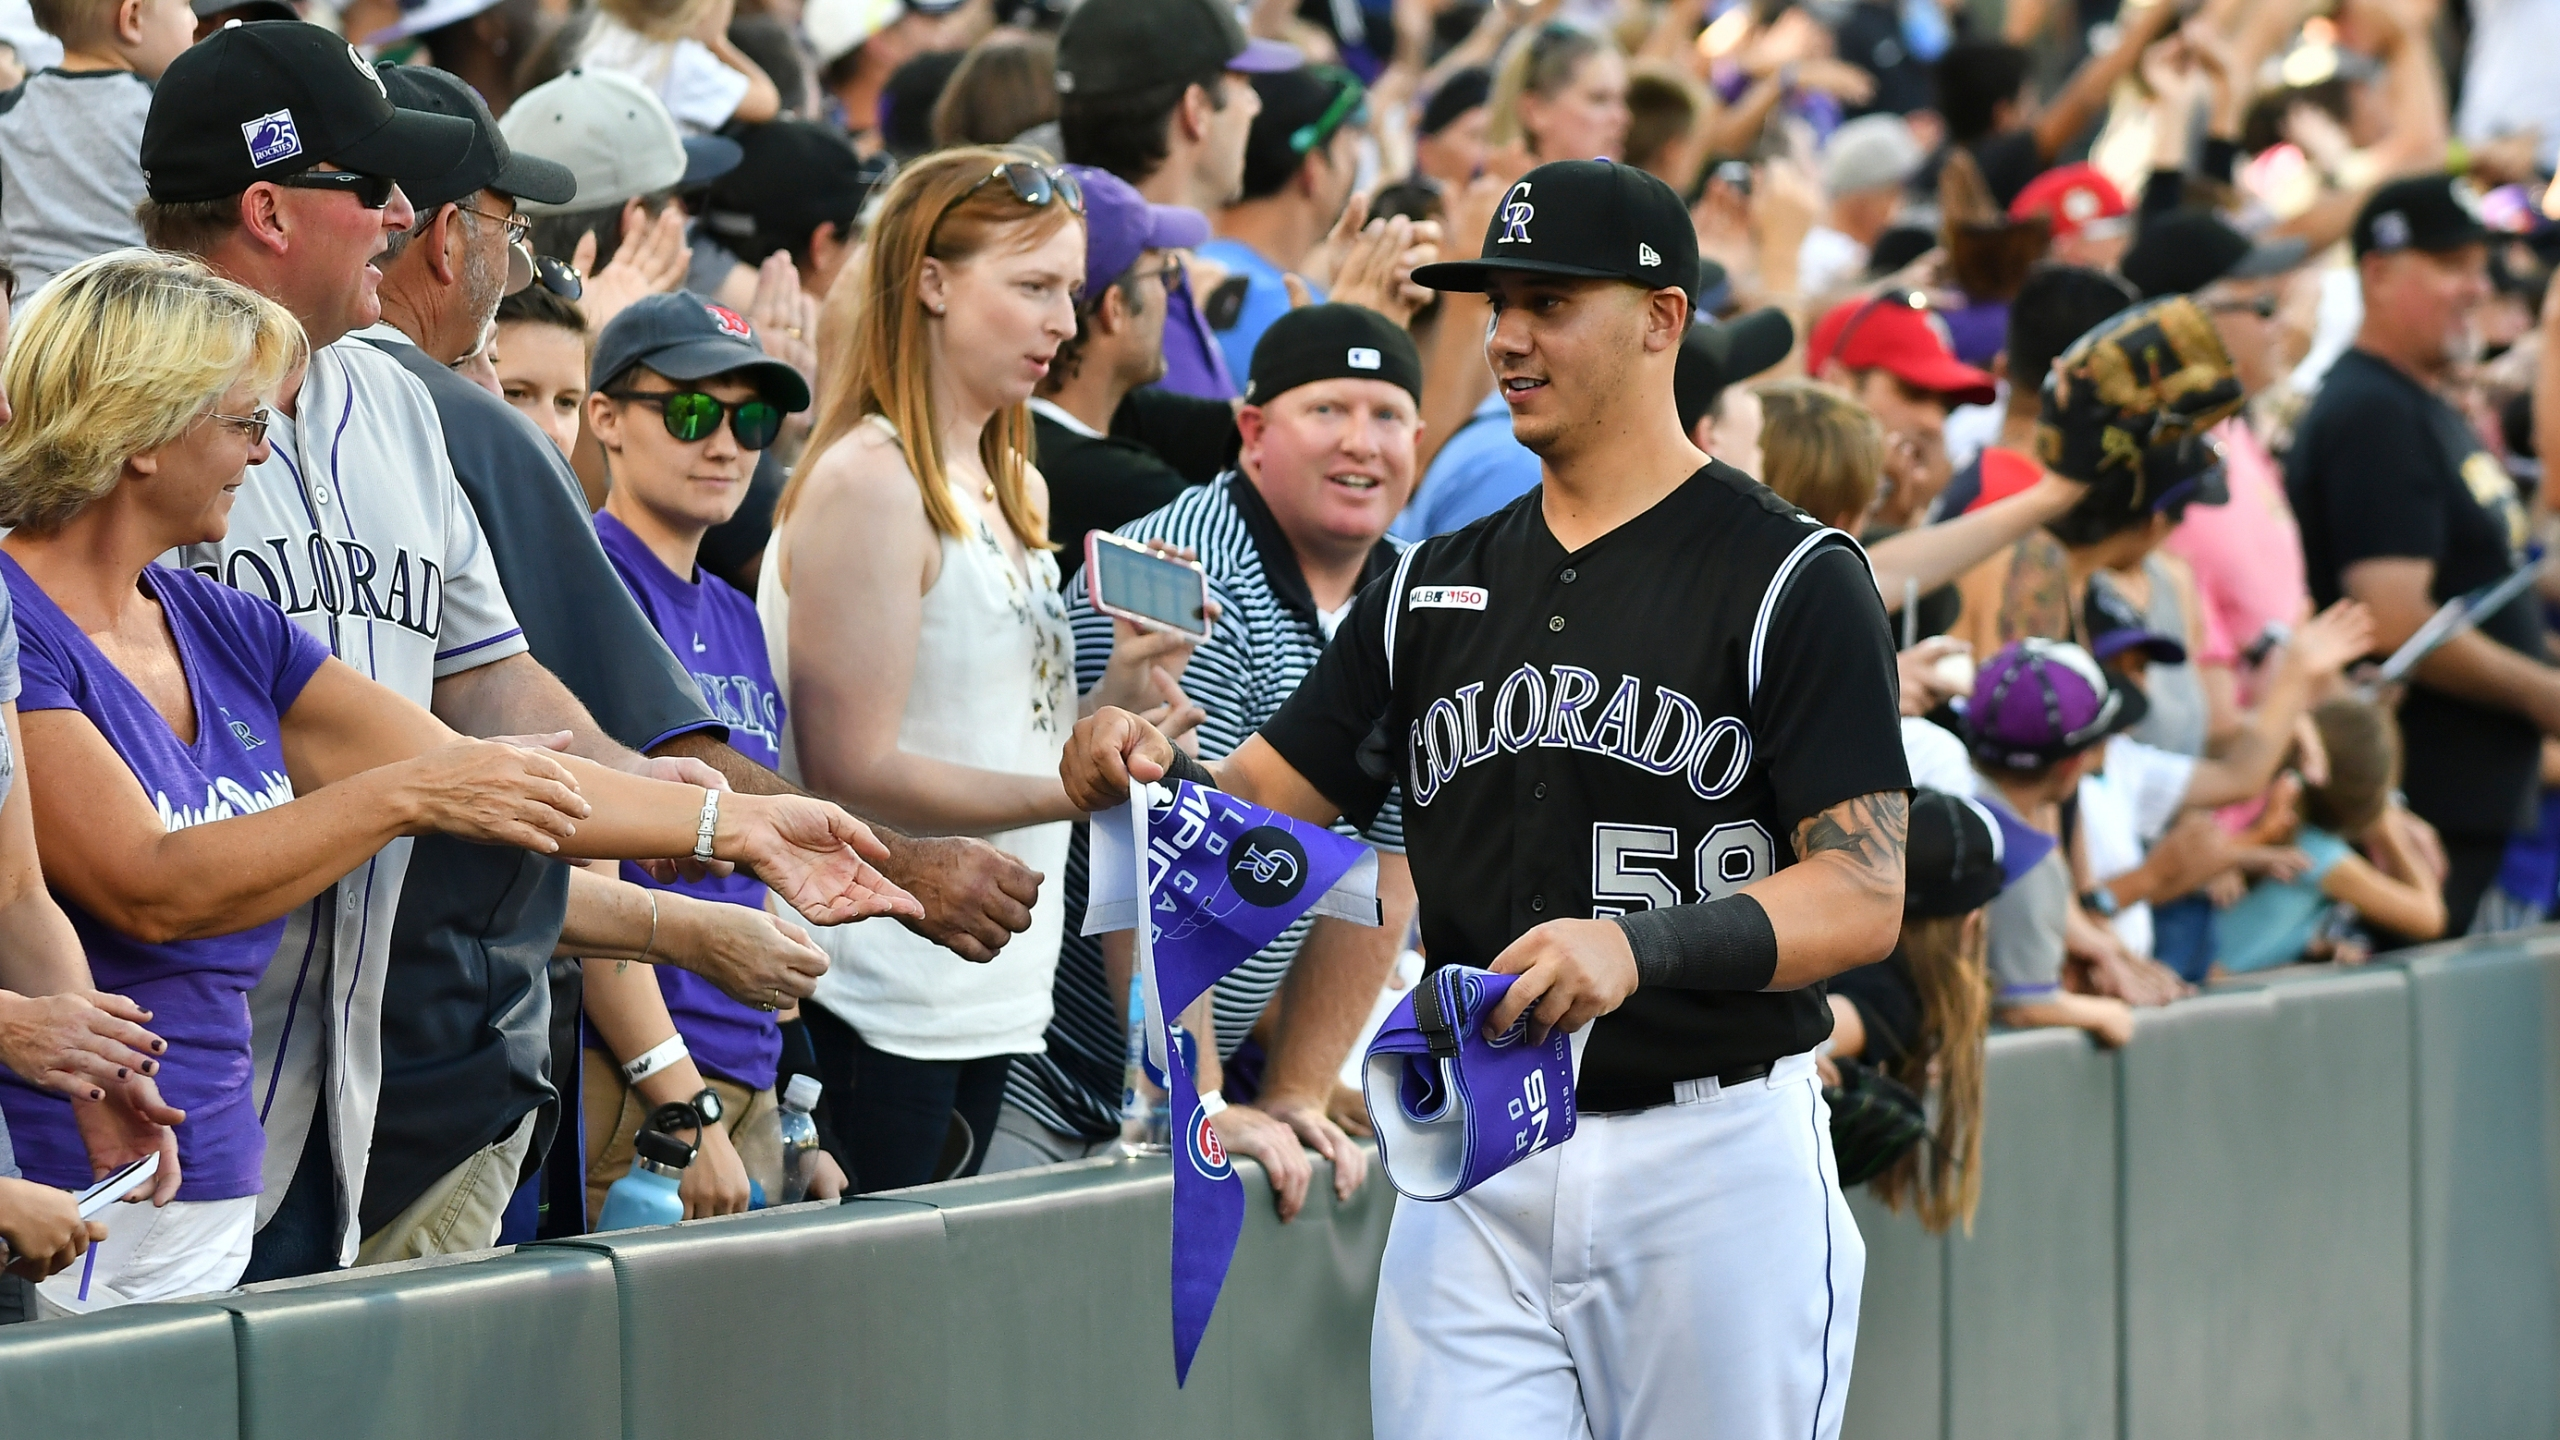 Colorado Rockies catcher Dom Nunez (58) hands out souvenirs to the fans after their win over the Milwaukee Brewers 4-3 in 13 innings at a baseball game Sunday, Sept. 29, 2019, in Denver. (AP Photo/John Leyba)